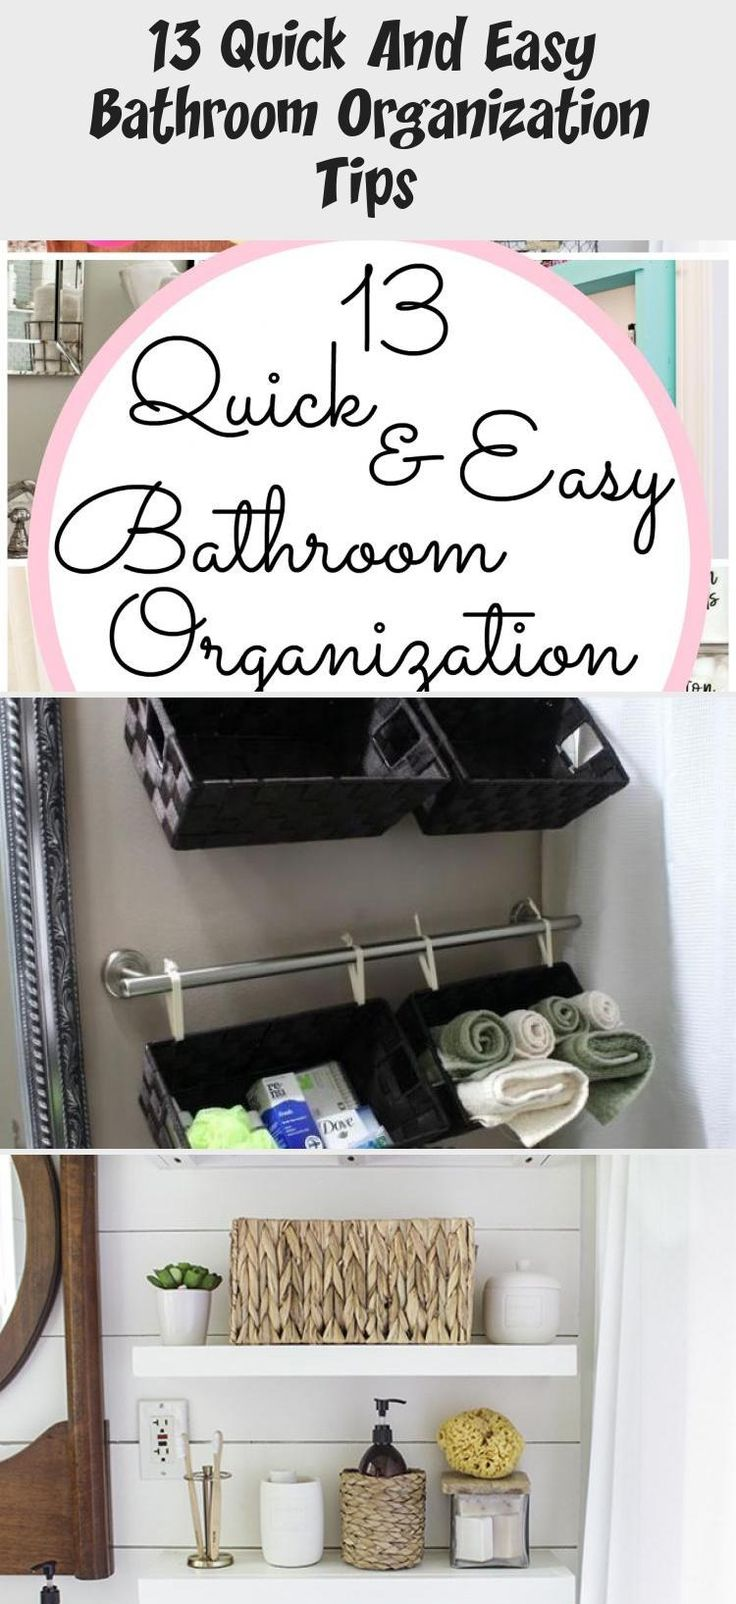 13 Quick And Easy Bathroom Organization Tips   – ideas